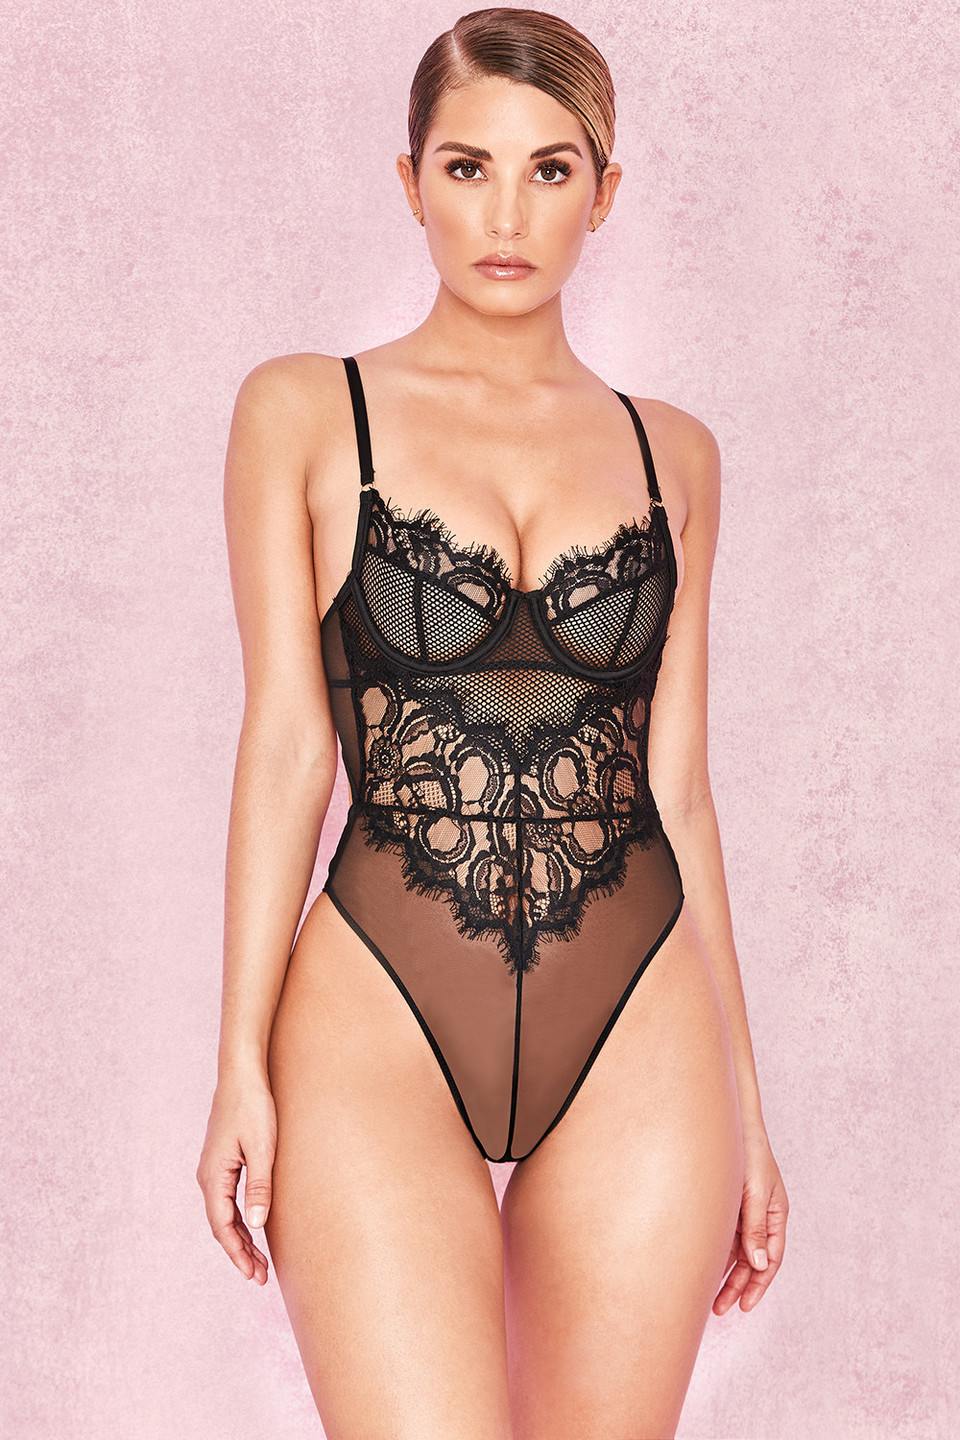 Nadia Black Lace Bodysuit